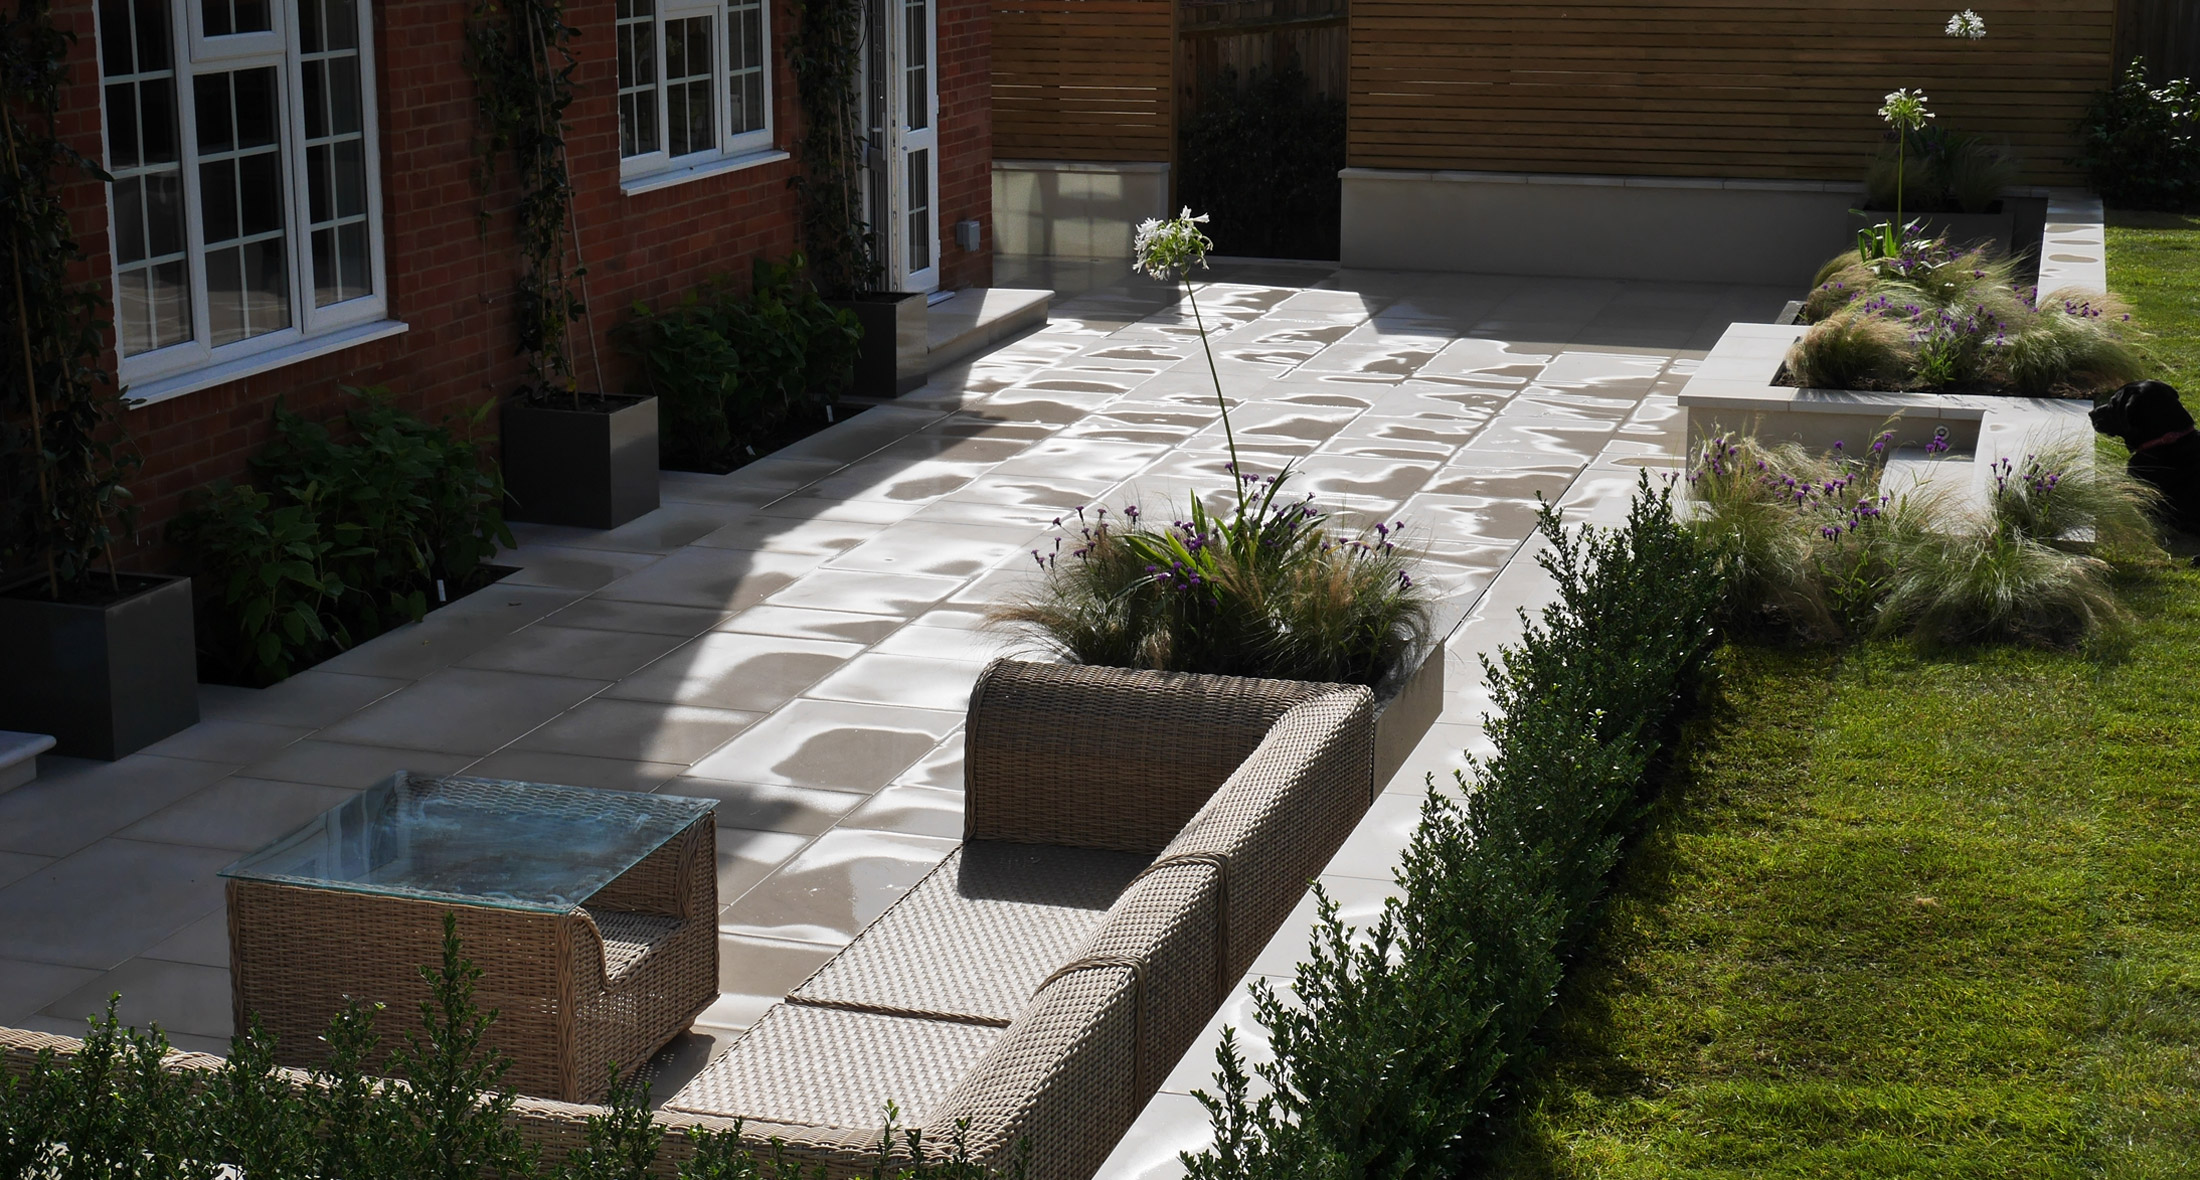 a slate grey garden design and landscaping patio with sleek grey paving and surrounding raised planting area